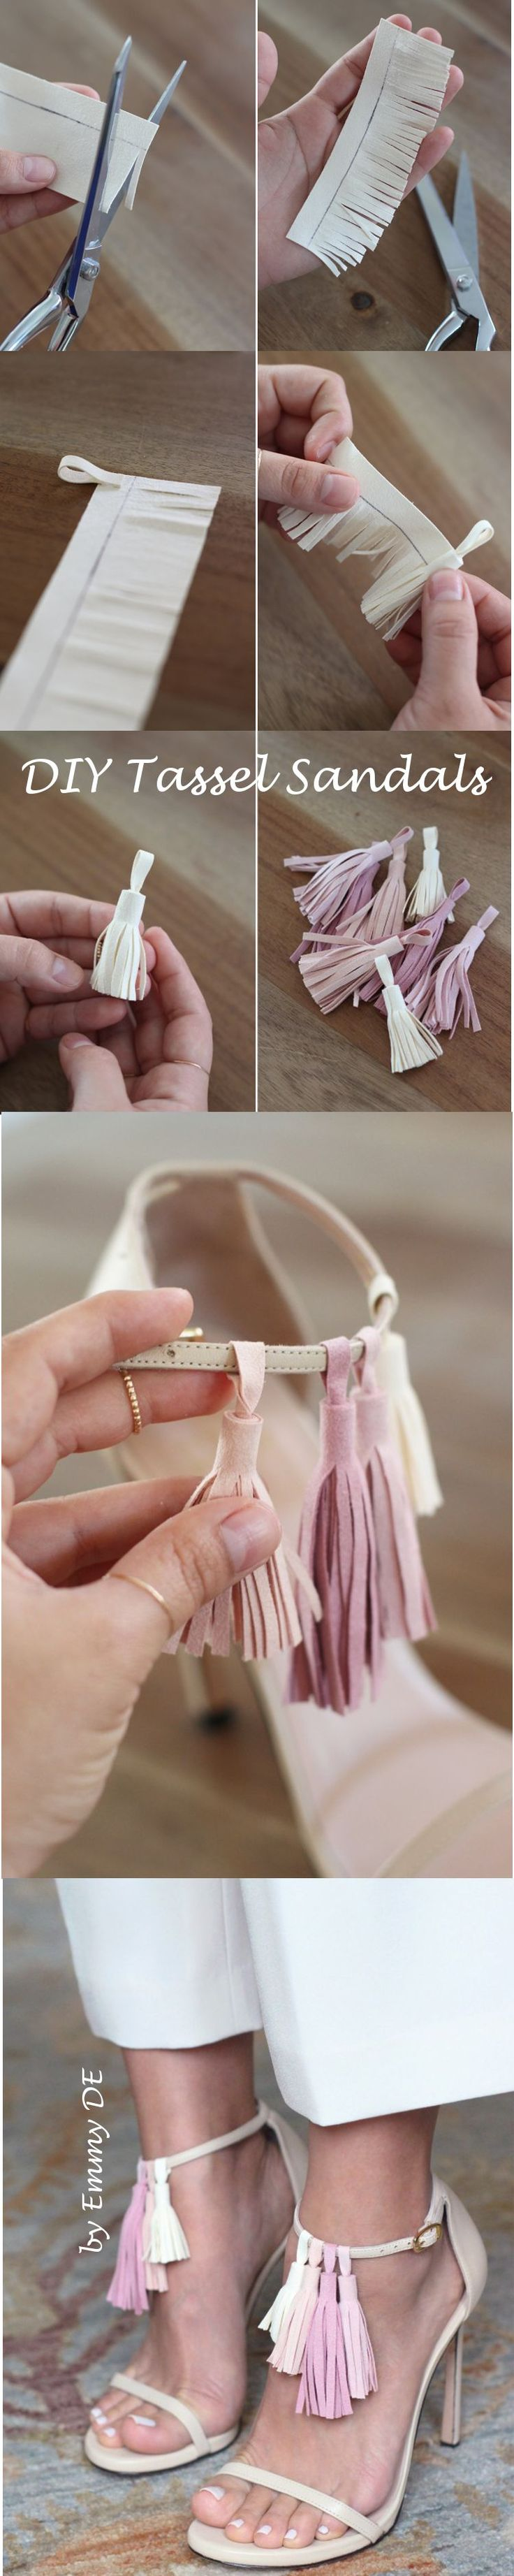 DIY Home Decor: DIY Tassel Sandals